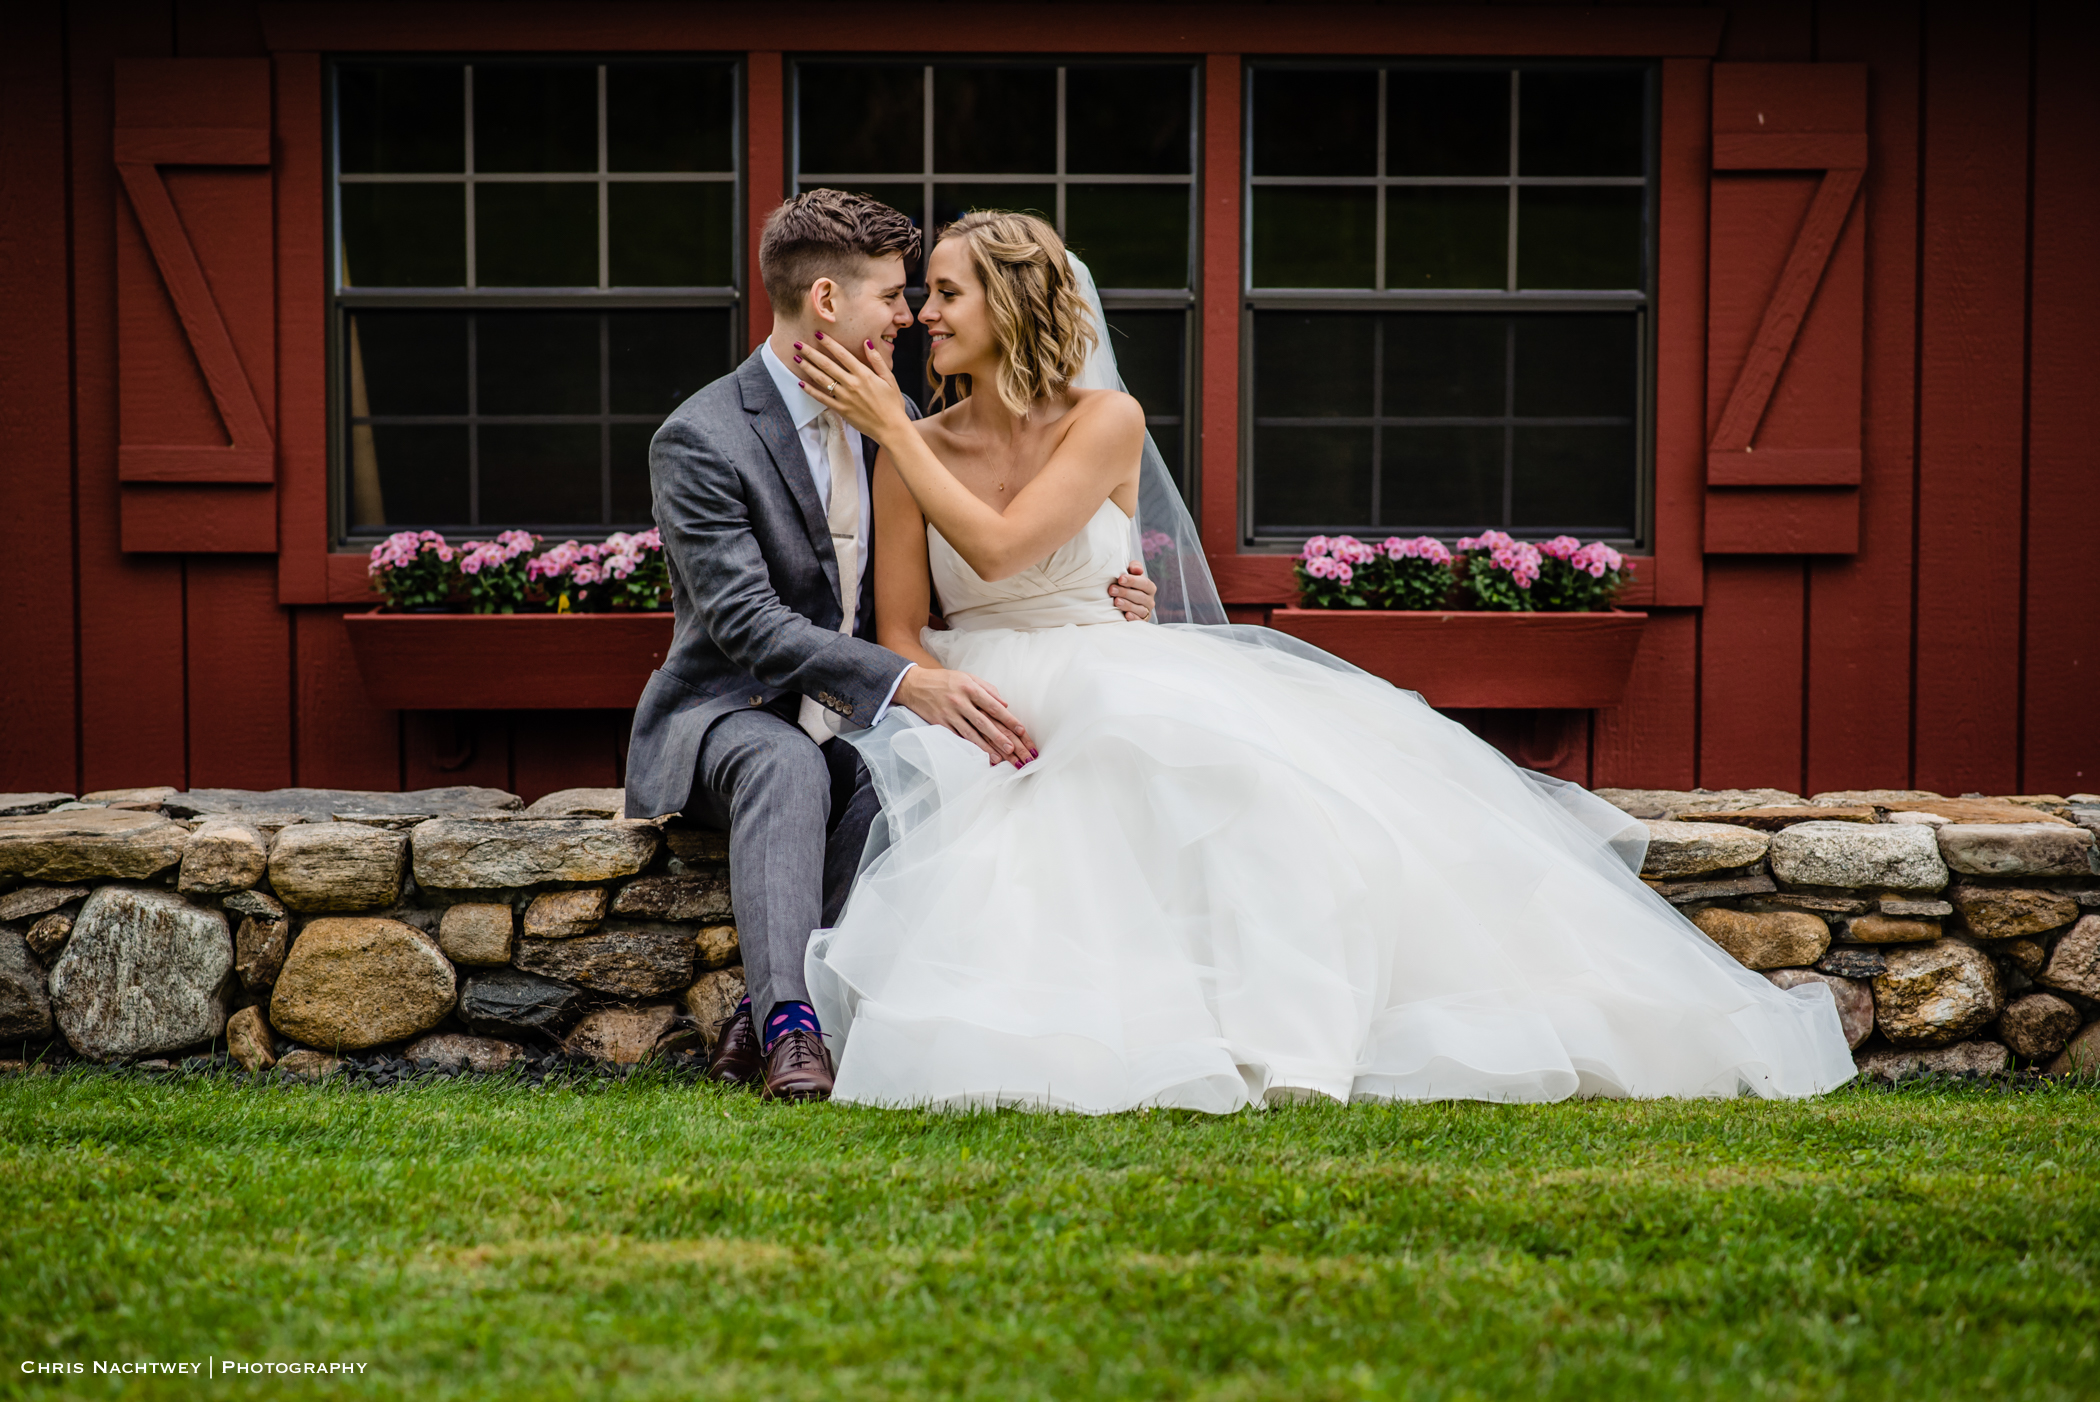 artistic-wedding-photographer-granby-connecticut-chris-nachtwey-photography-2018-34.jpg